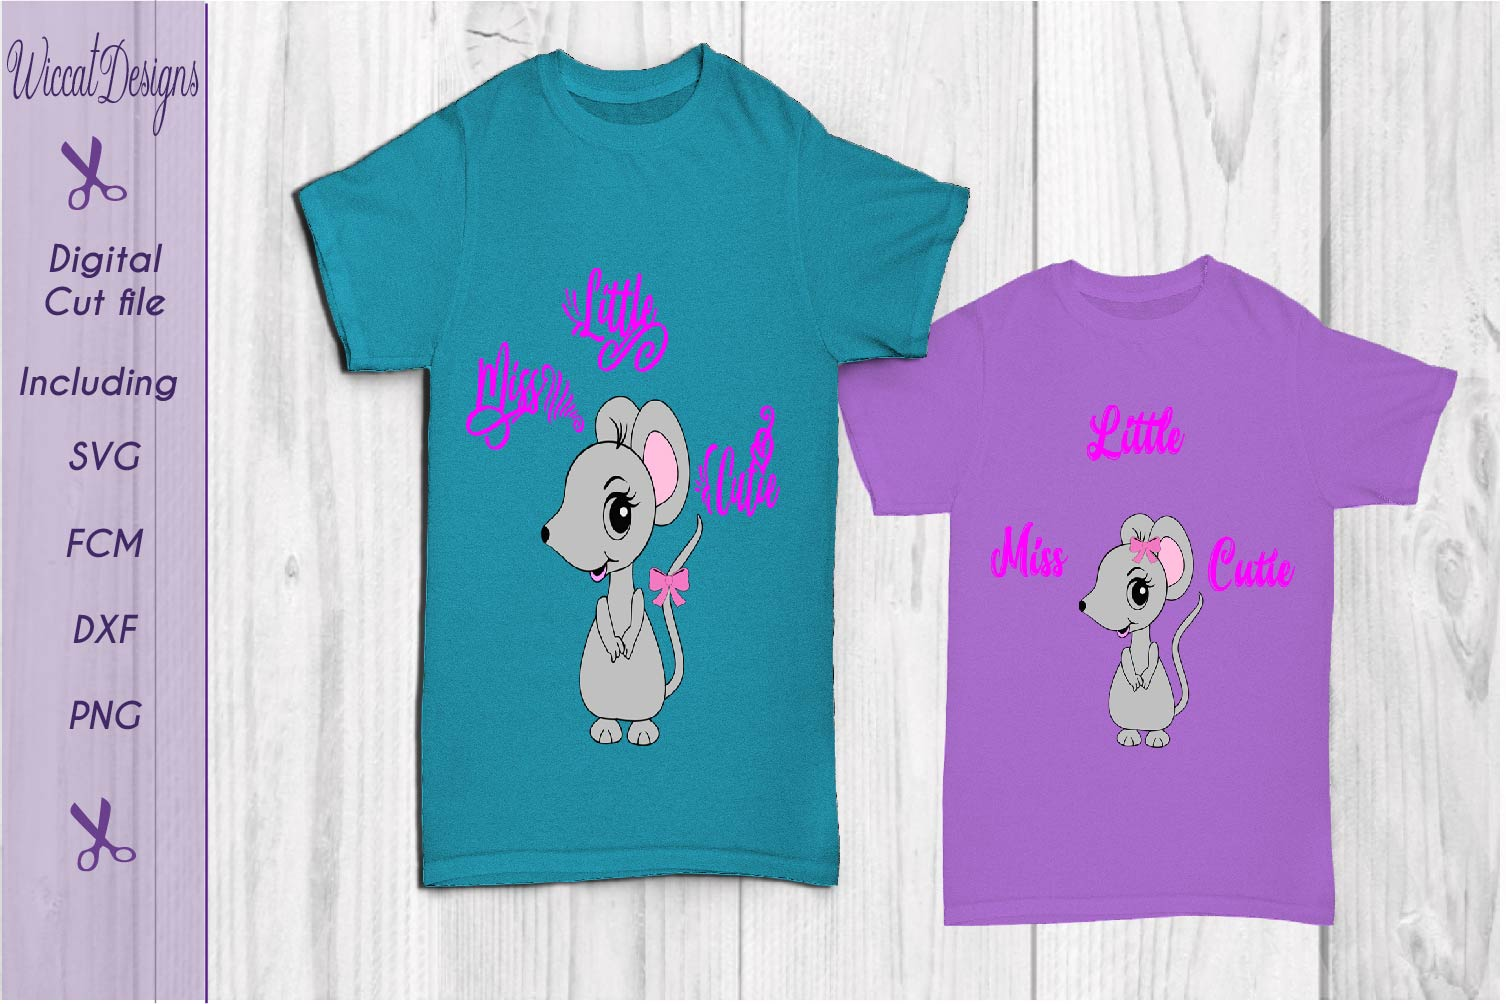 Mouse svg, Little miss cutie svg, quote svg, tshirt design svg example image 4